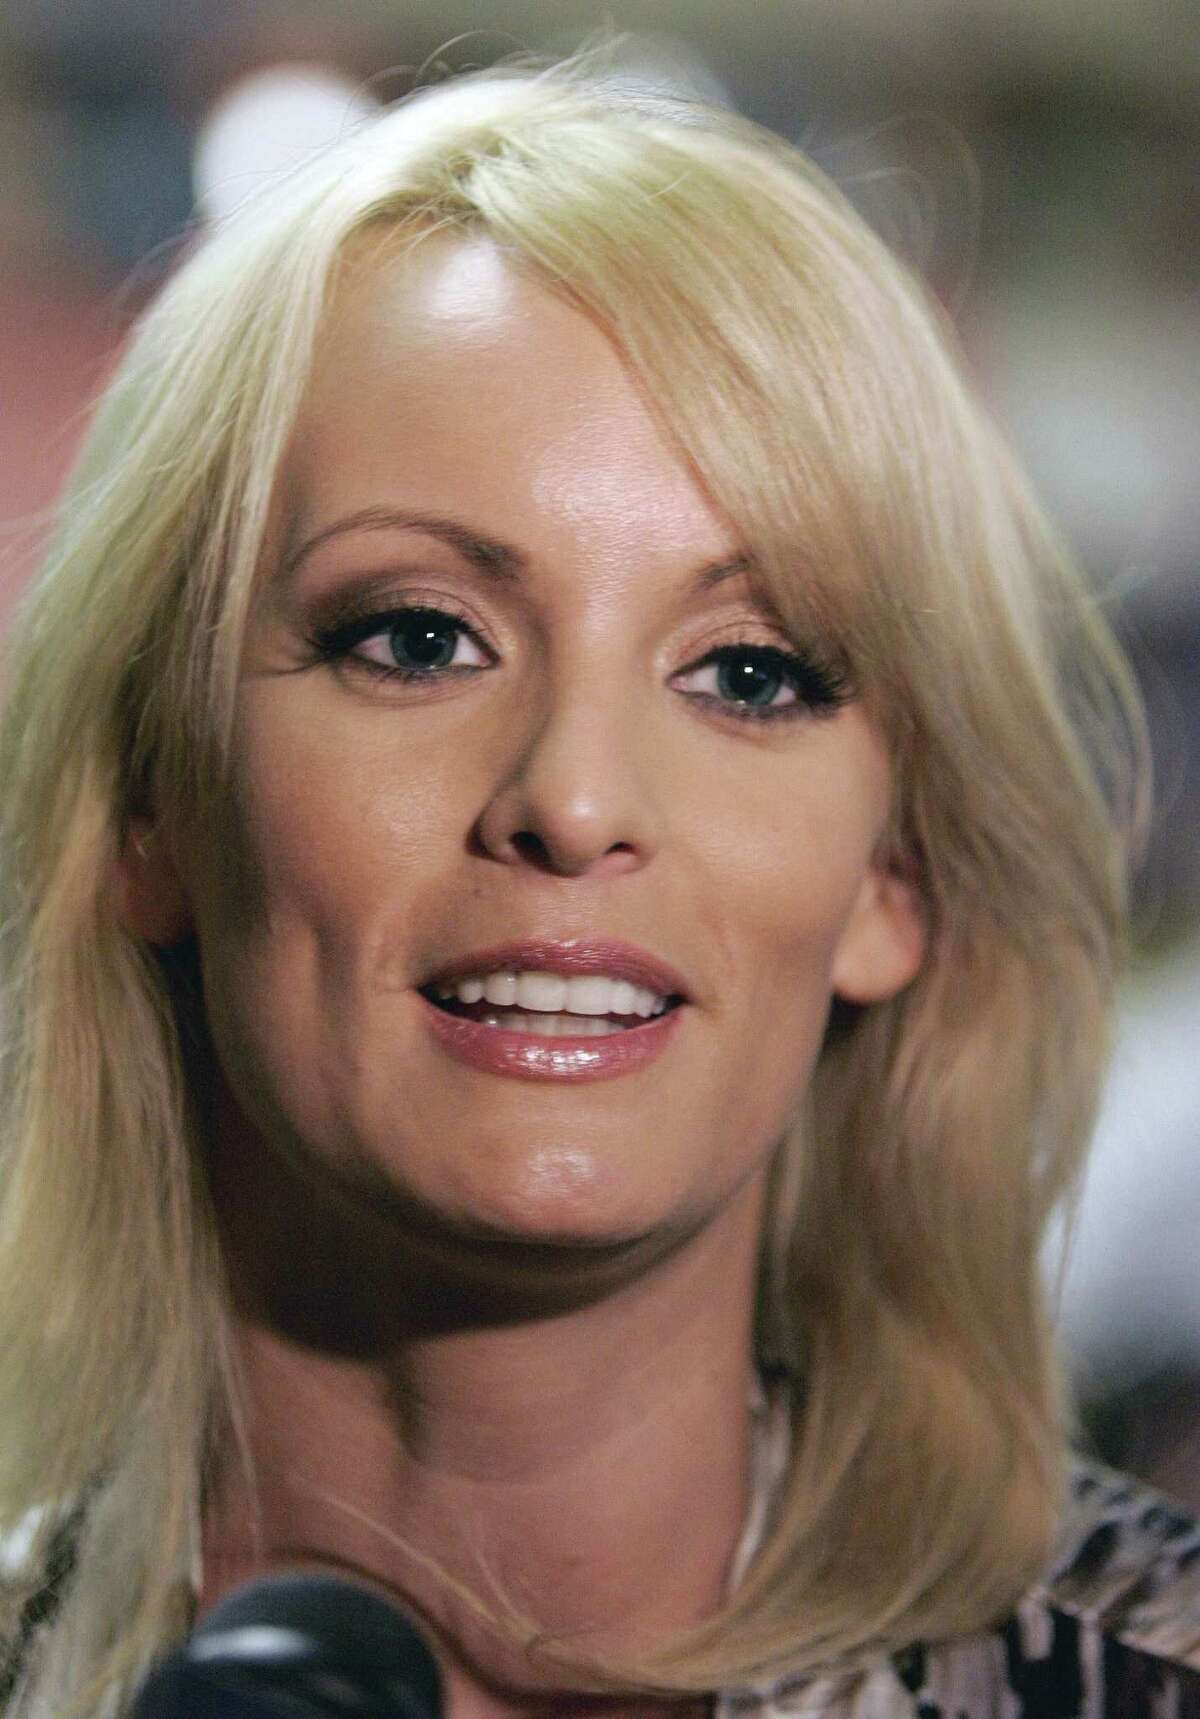 The porn actress Stephanie Clifford, known as Stormy Daniels, is challenging the arbitration clause in nondisclosure agreements involving an alleged affair with President Donald Trump. Trump has denied the affair.